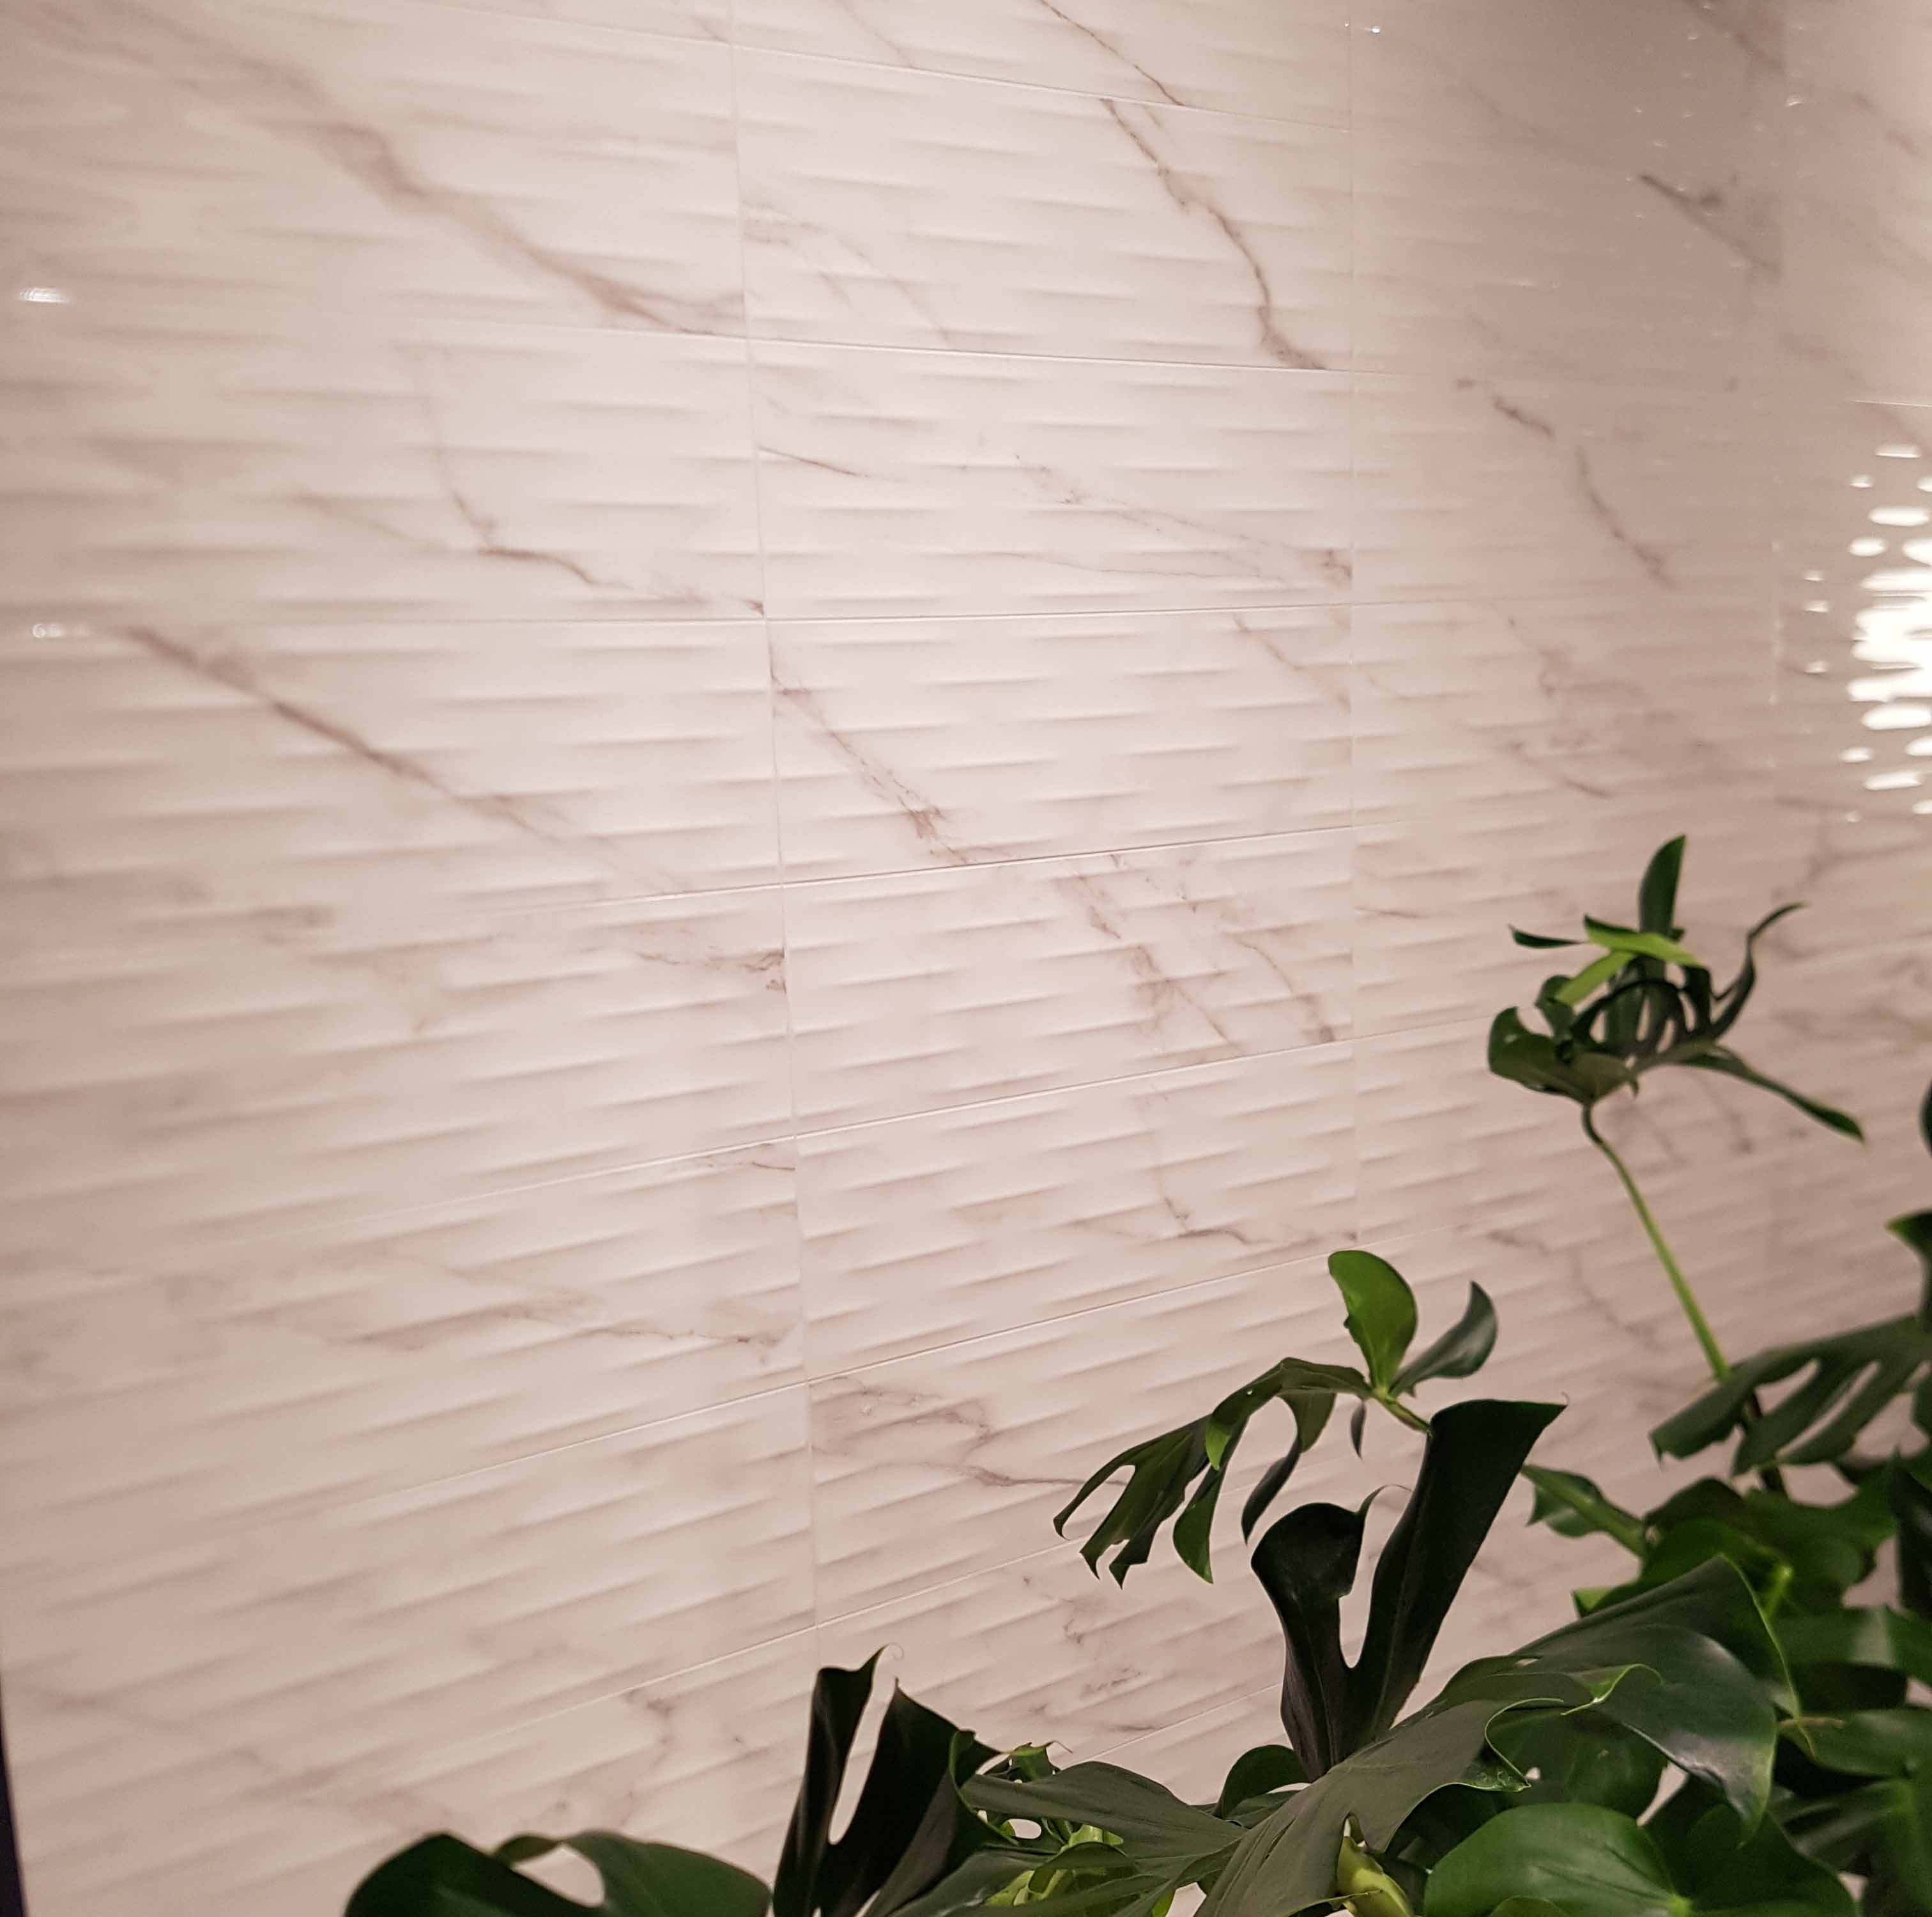 Marble lookcirillo lighting ceramics sydney canberra drk grey cirillo sydney brookvale canberra tile trends large format modern mediterranean thin tiles canberra thin floor tiles dailygadgetfo Images